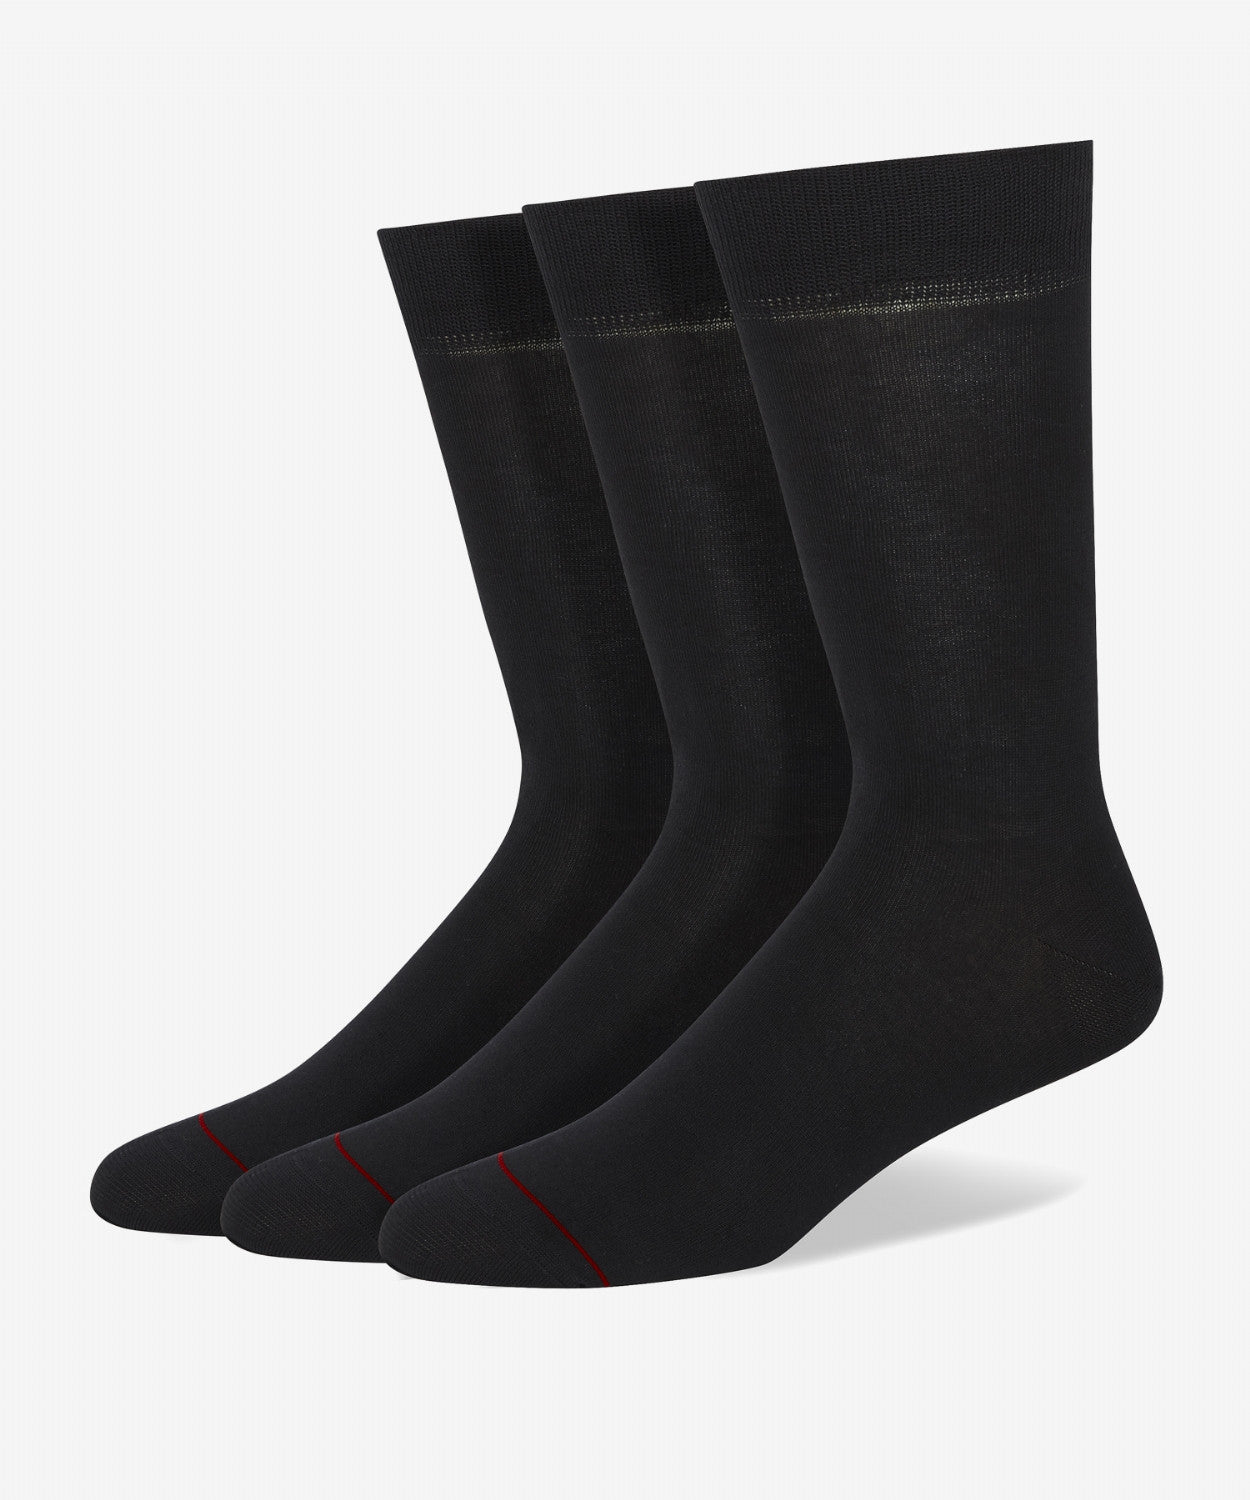 BLACK CLASSIC MERCERIZED COTTON SOCKS (TRIPLE PACK)